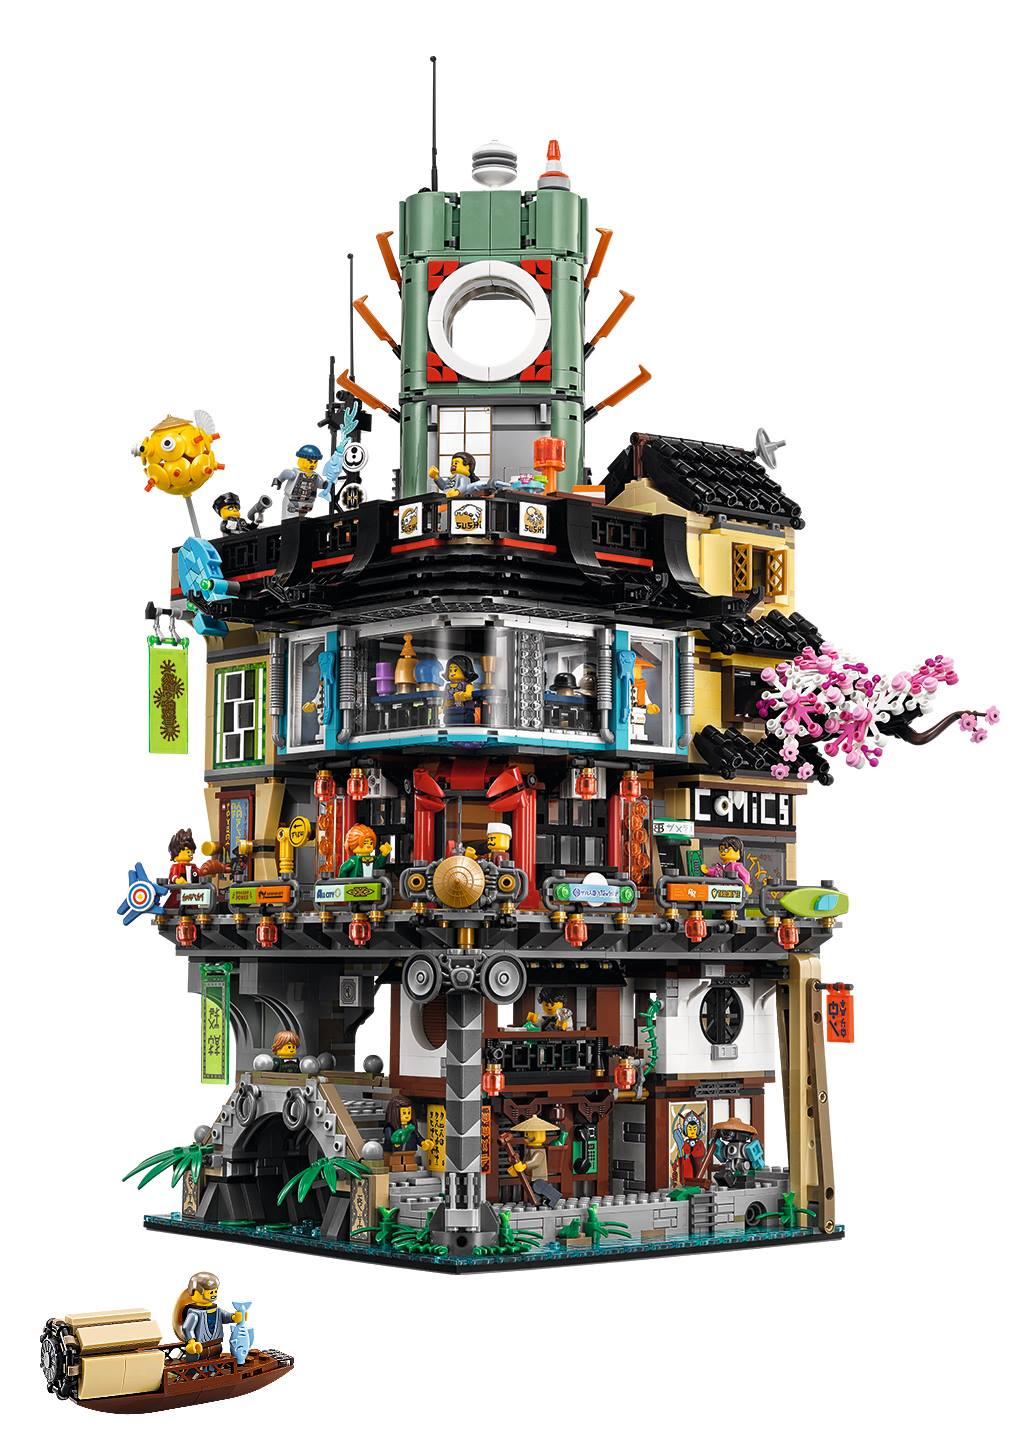 The Lego Ninjago Movie Brickset Lego Set Guide And Database